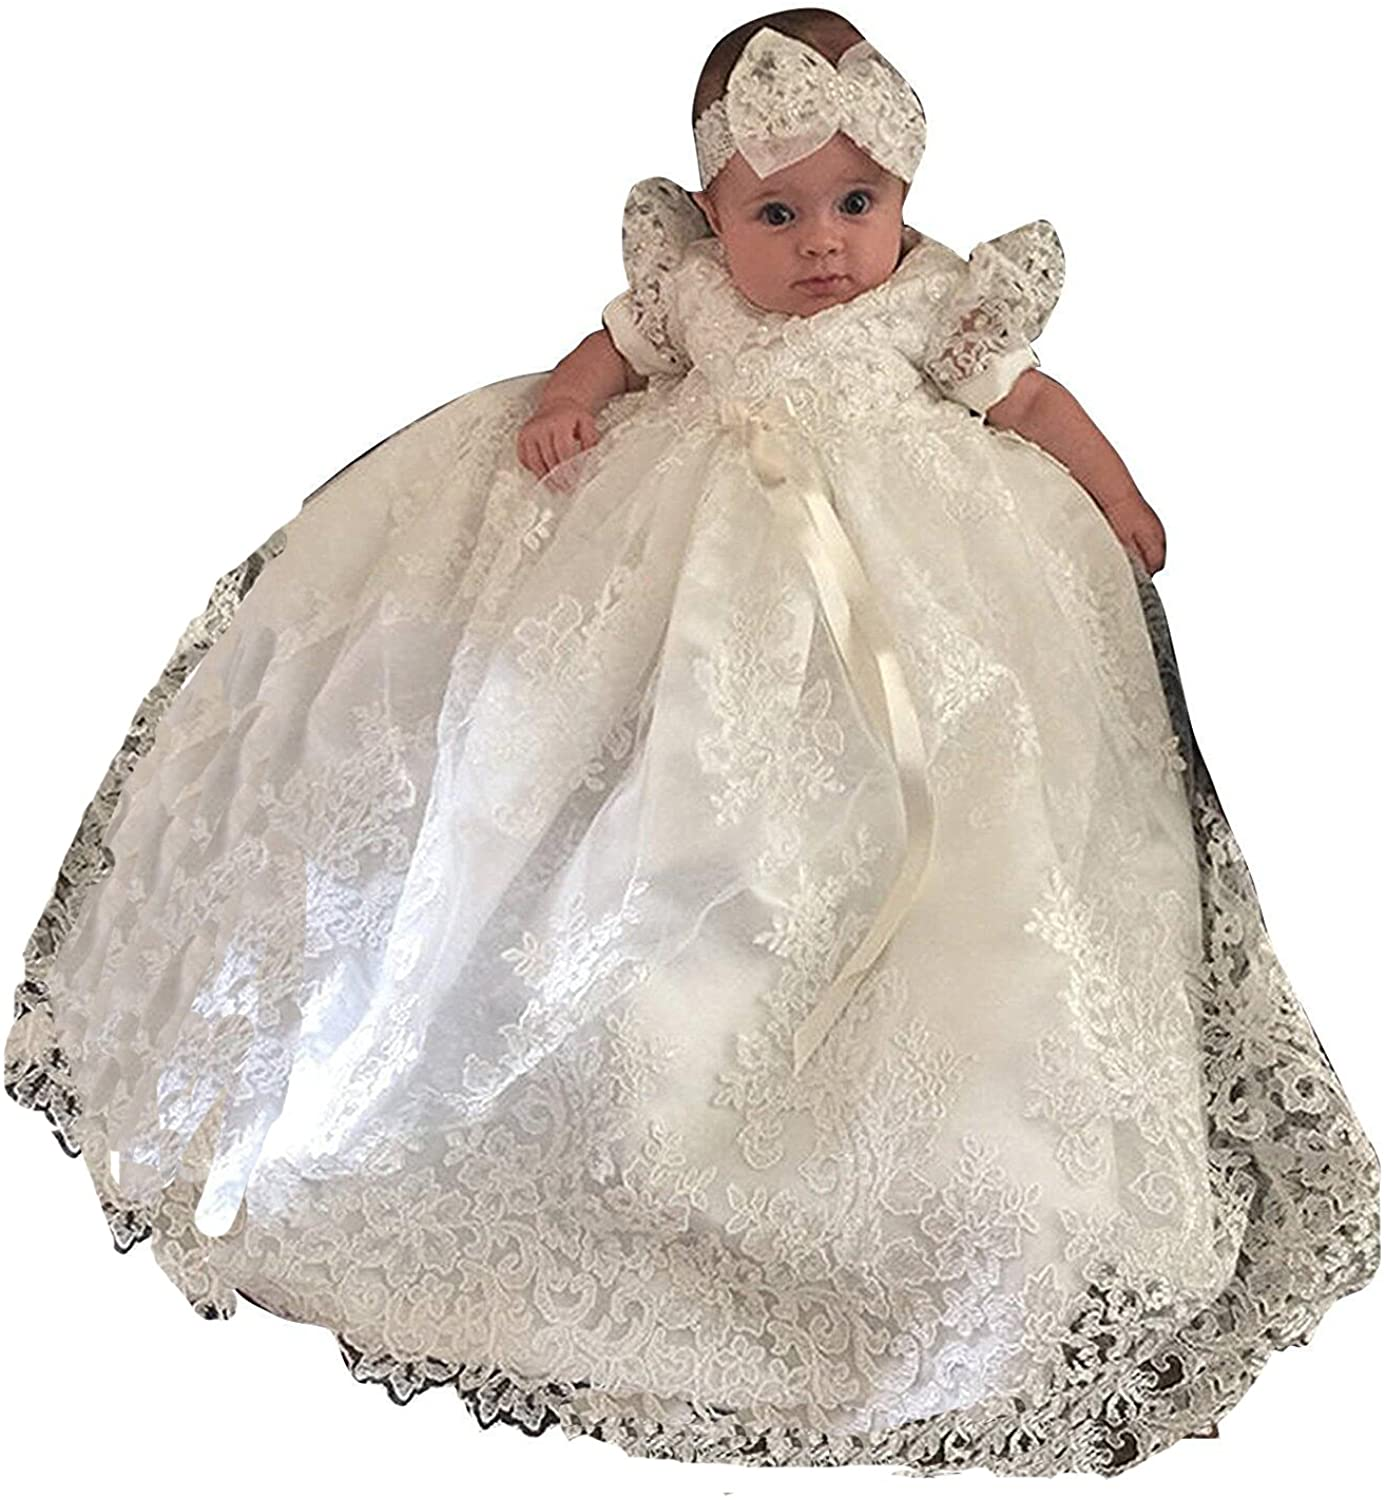 Newdeve Baby-Girls Lace Beads Infant Toddler White Christening Gowns Long (9-12 Months, Ivory)